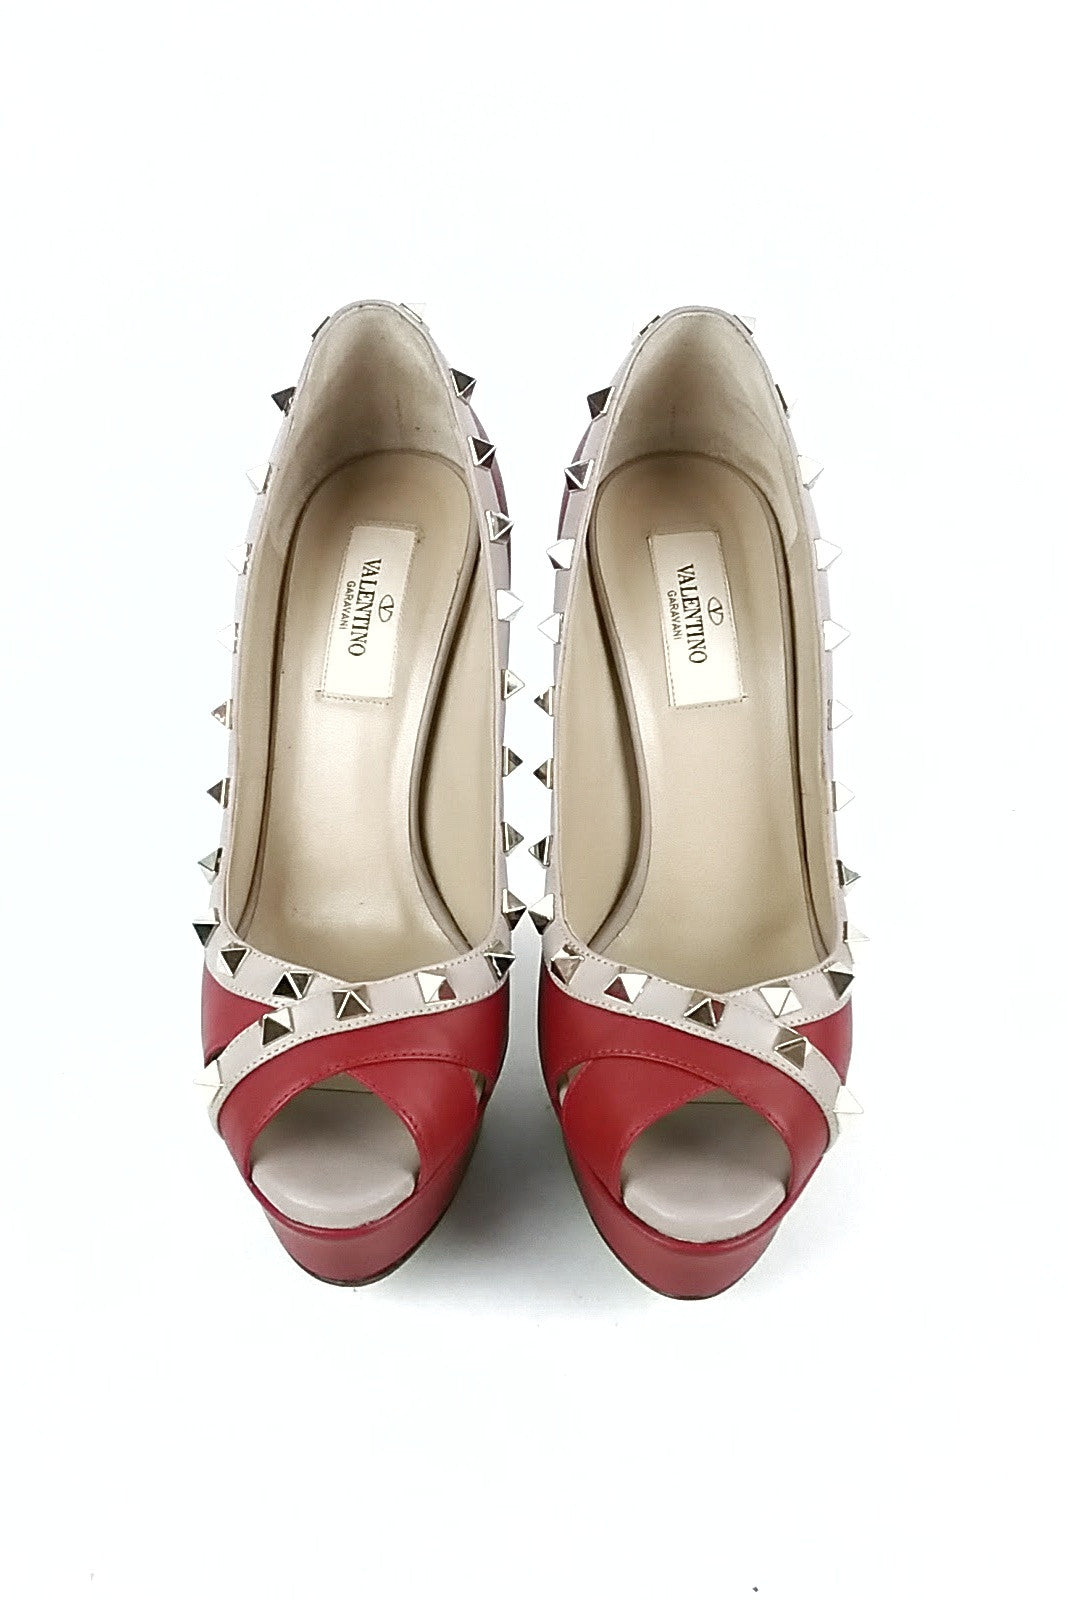 Rouge Leather Turati Rockstud Pumps